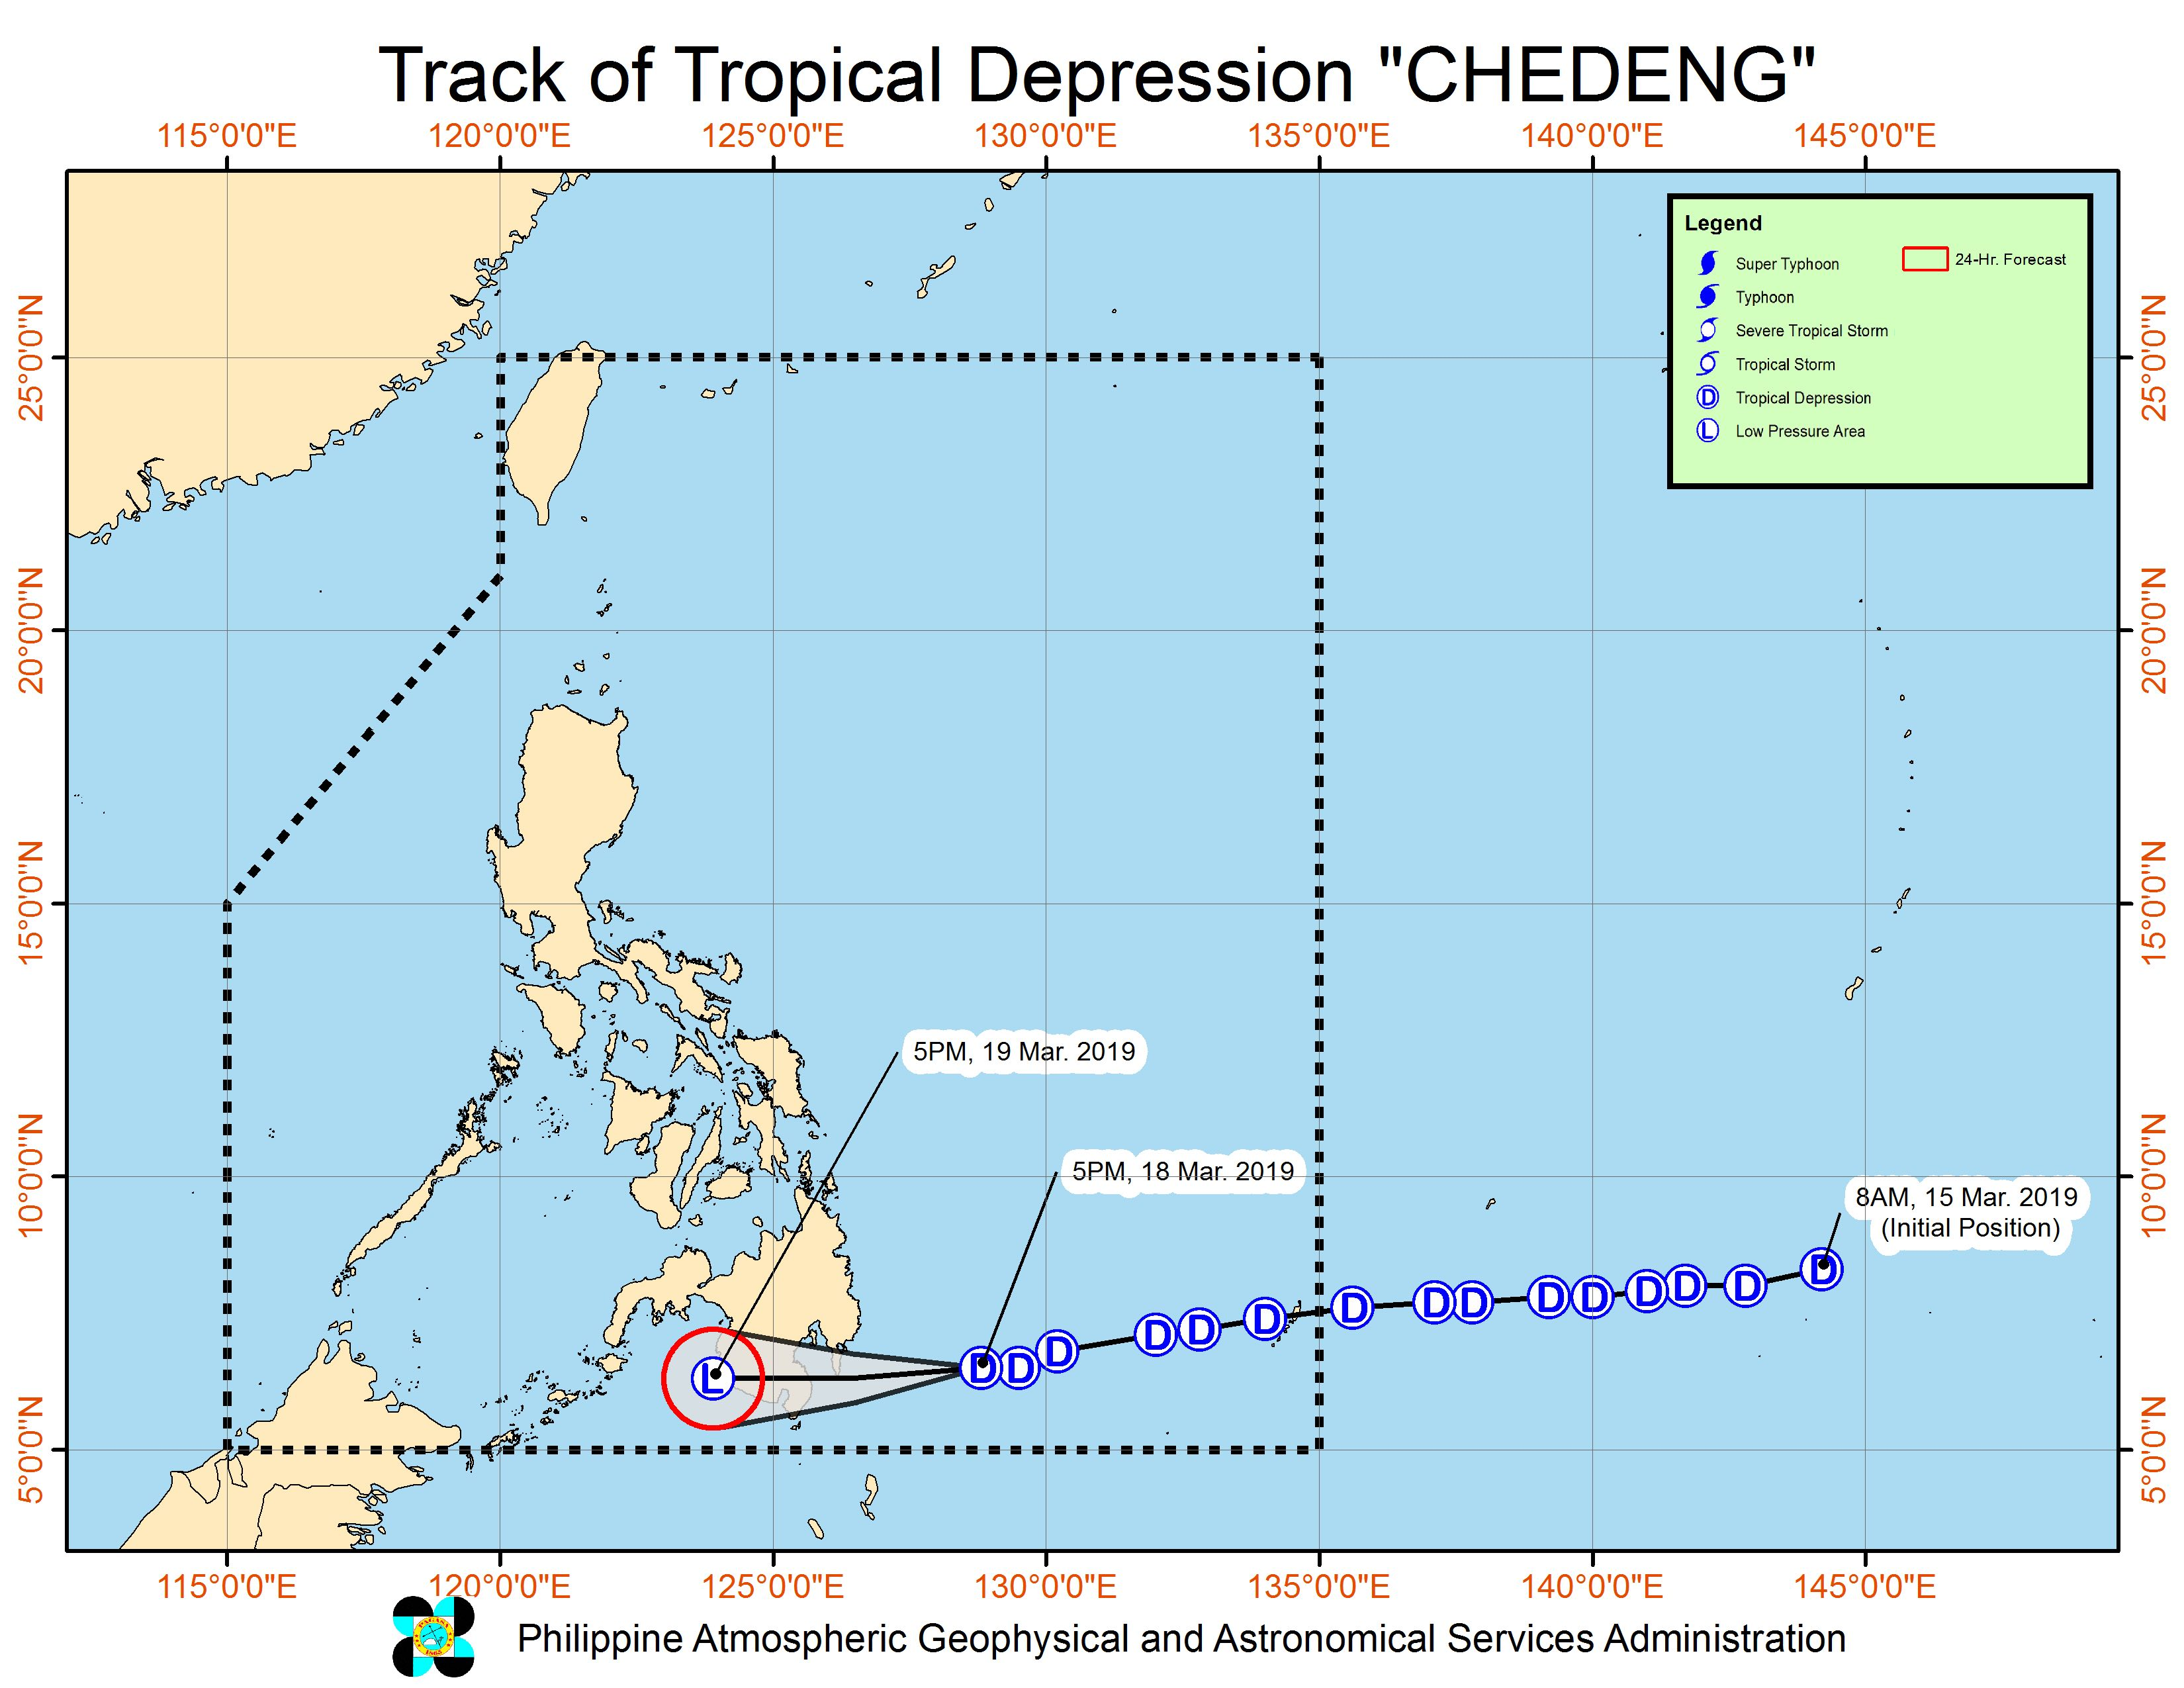 Forecast track of Tropical Depression Chedeng as of March 18, 2019, 5 pm. Image from PAGASA